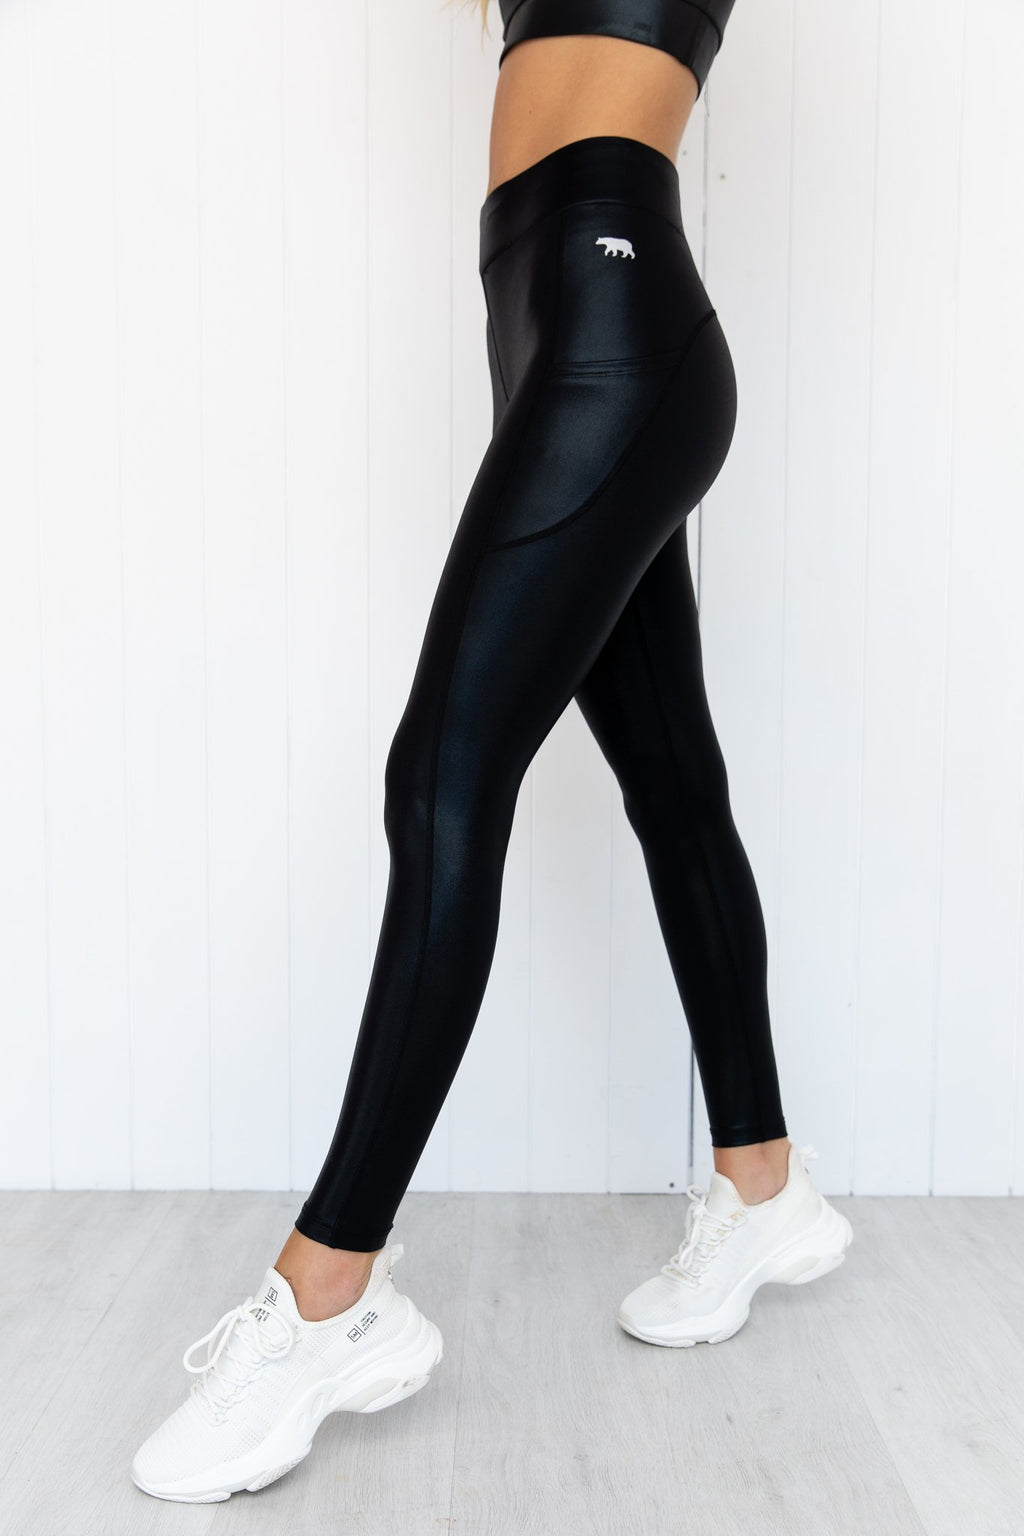 Zodiac Flex ZonevTights - Black